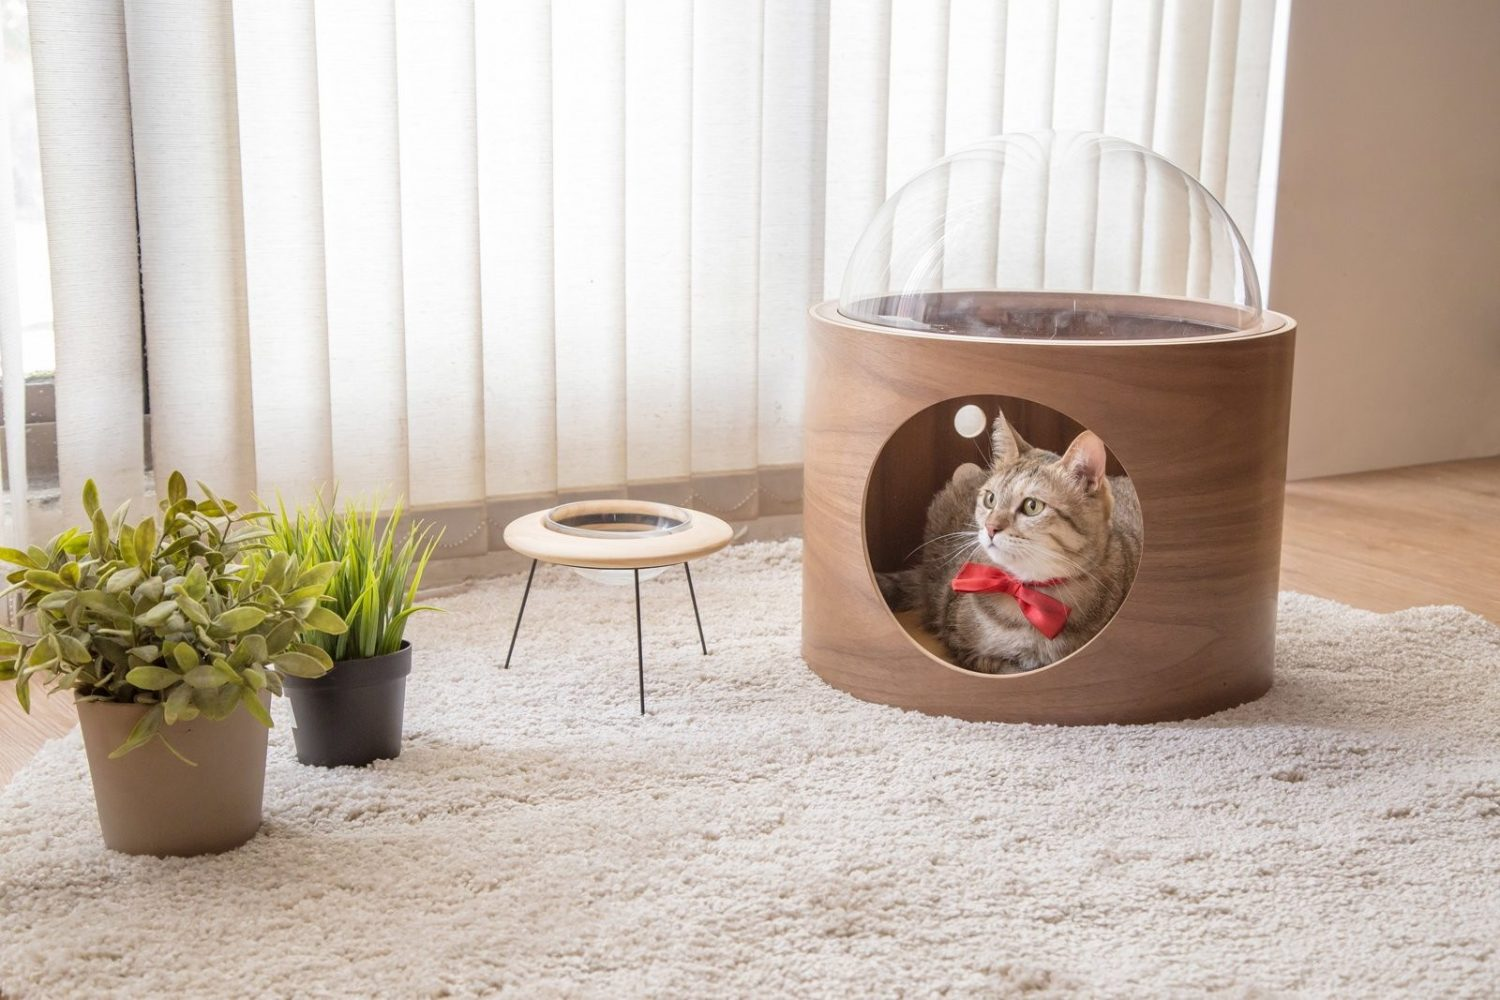 Spaceship-Inspired Cat Beds by Myzoo Studio